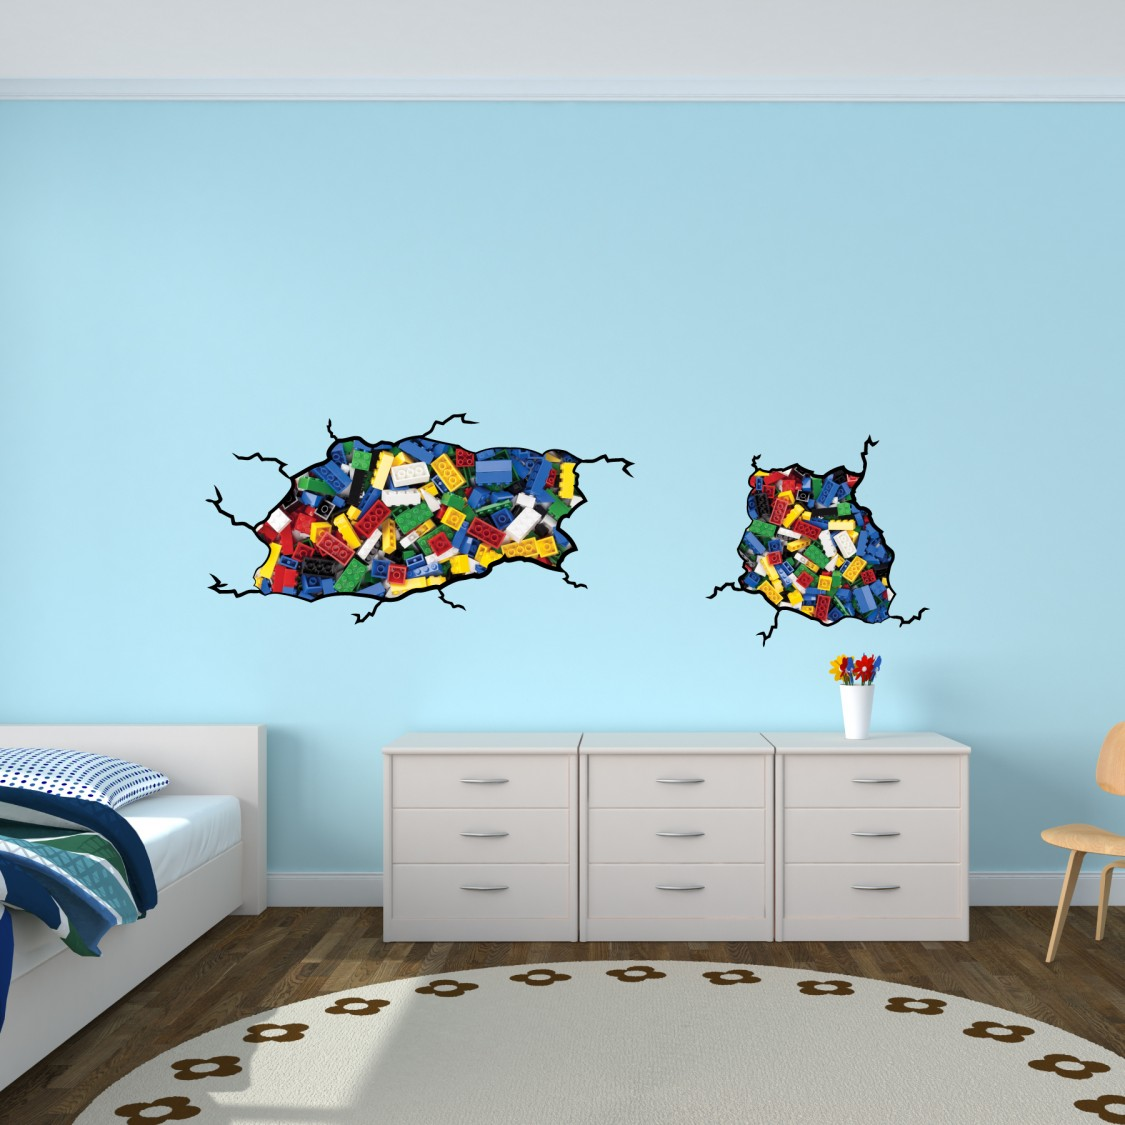 Kids room ideas 15 lego room decor style motivation for Art room mural ideas